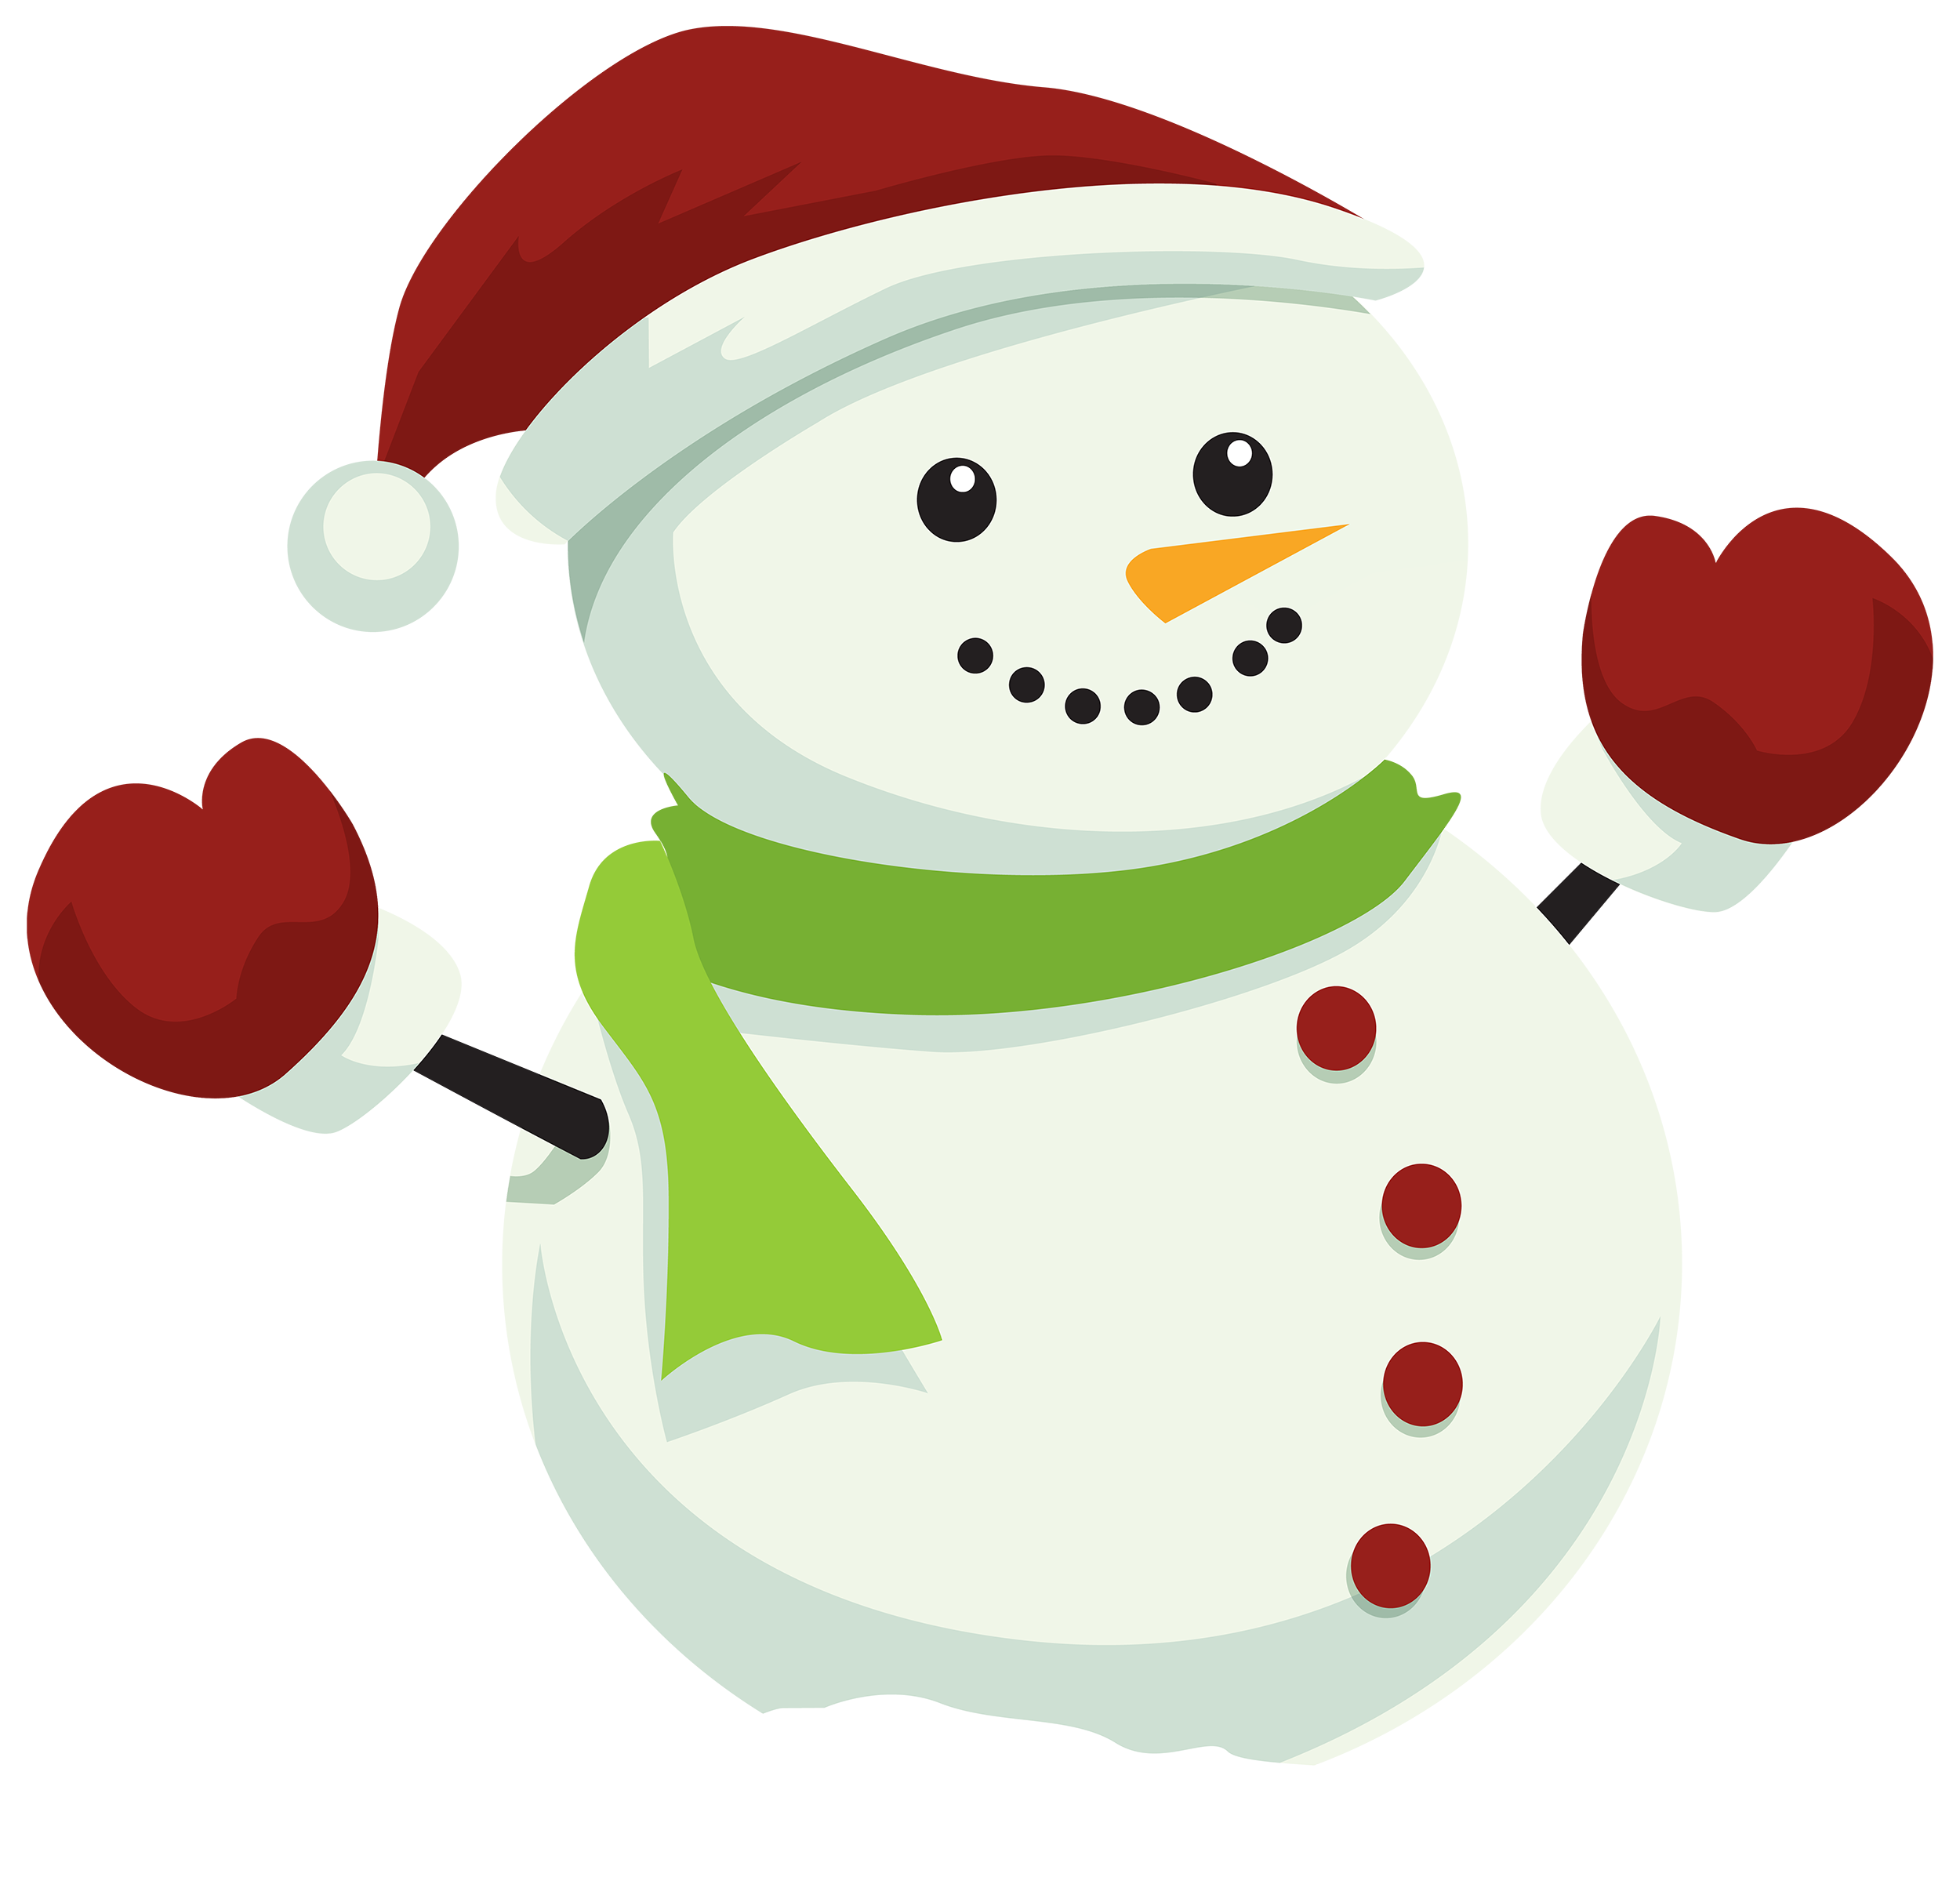 Snowman clipart transparent background. Png images all pic